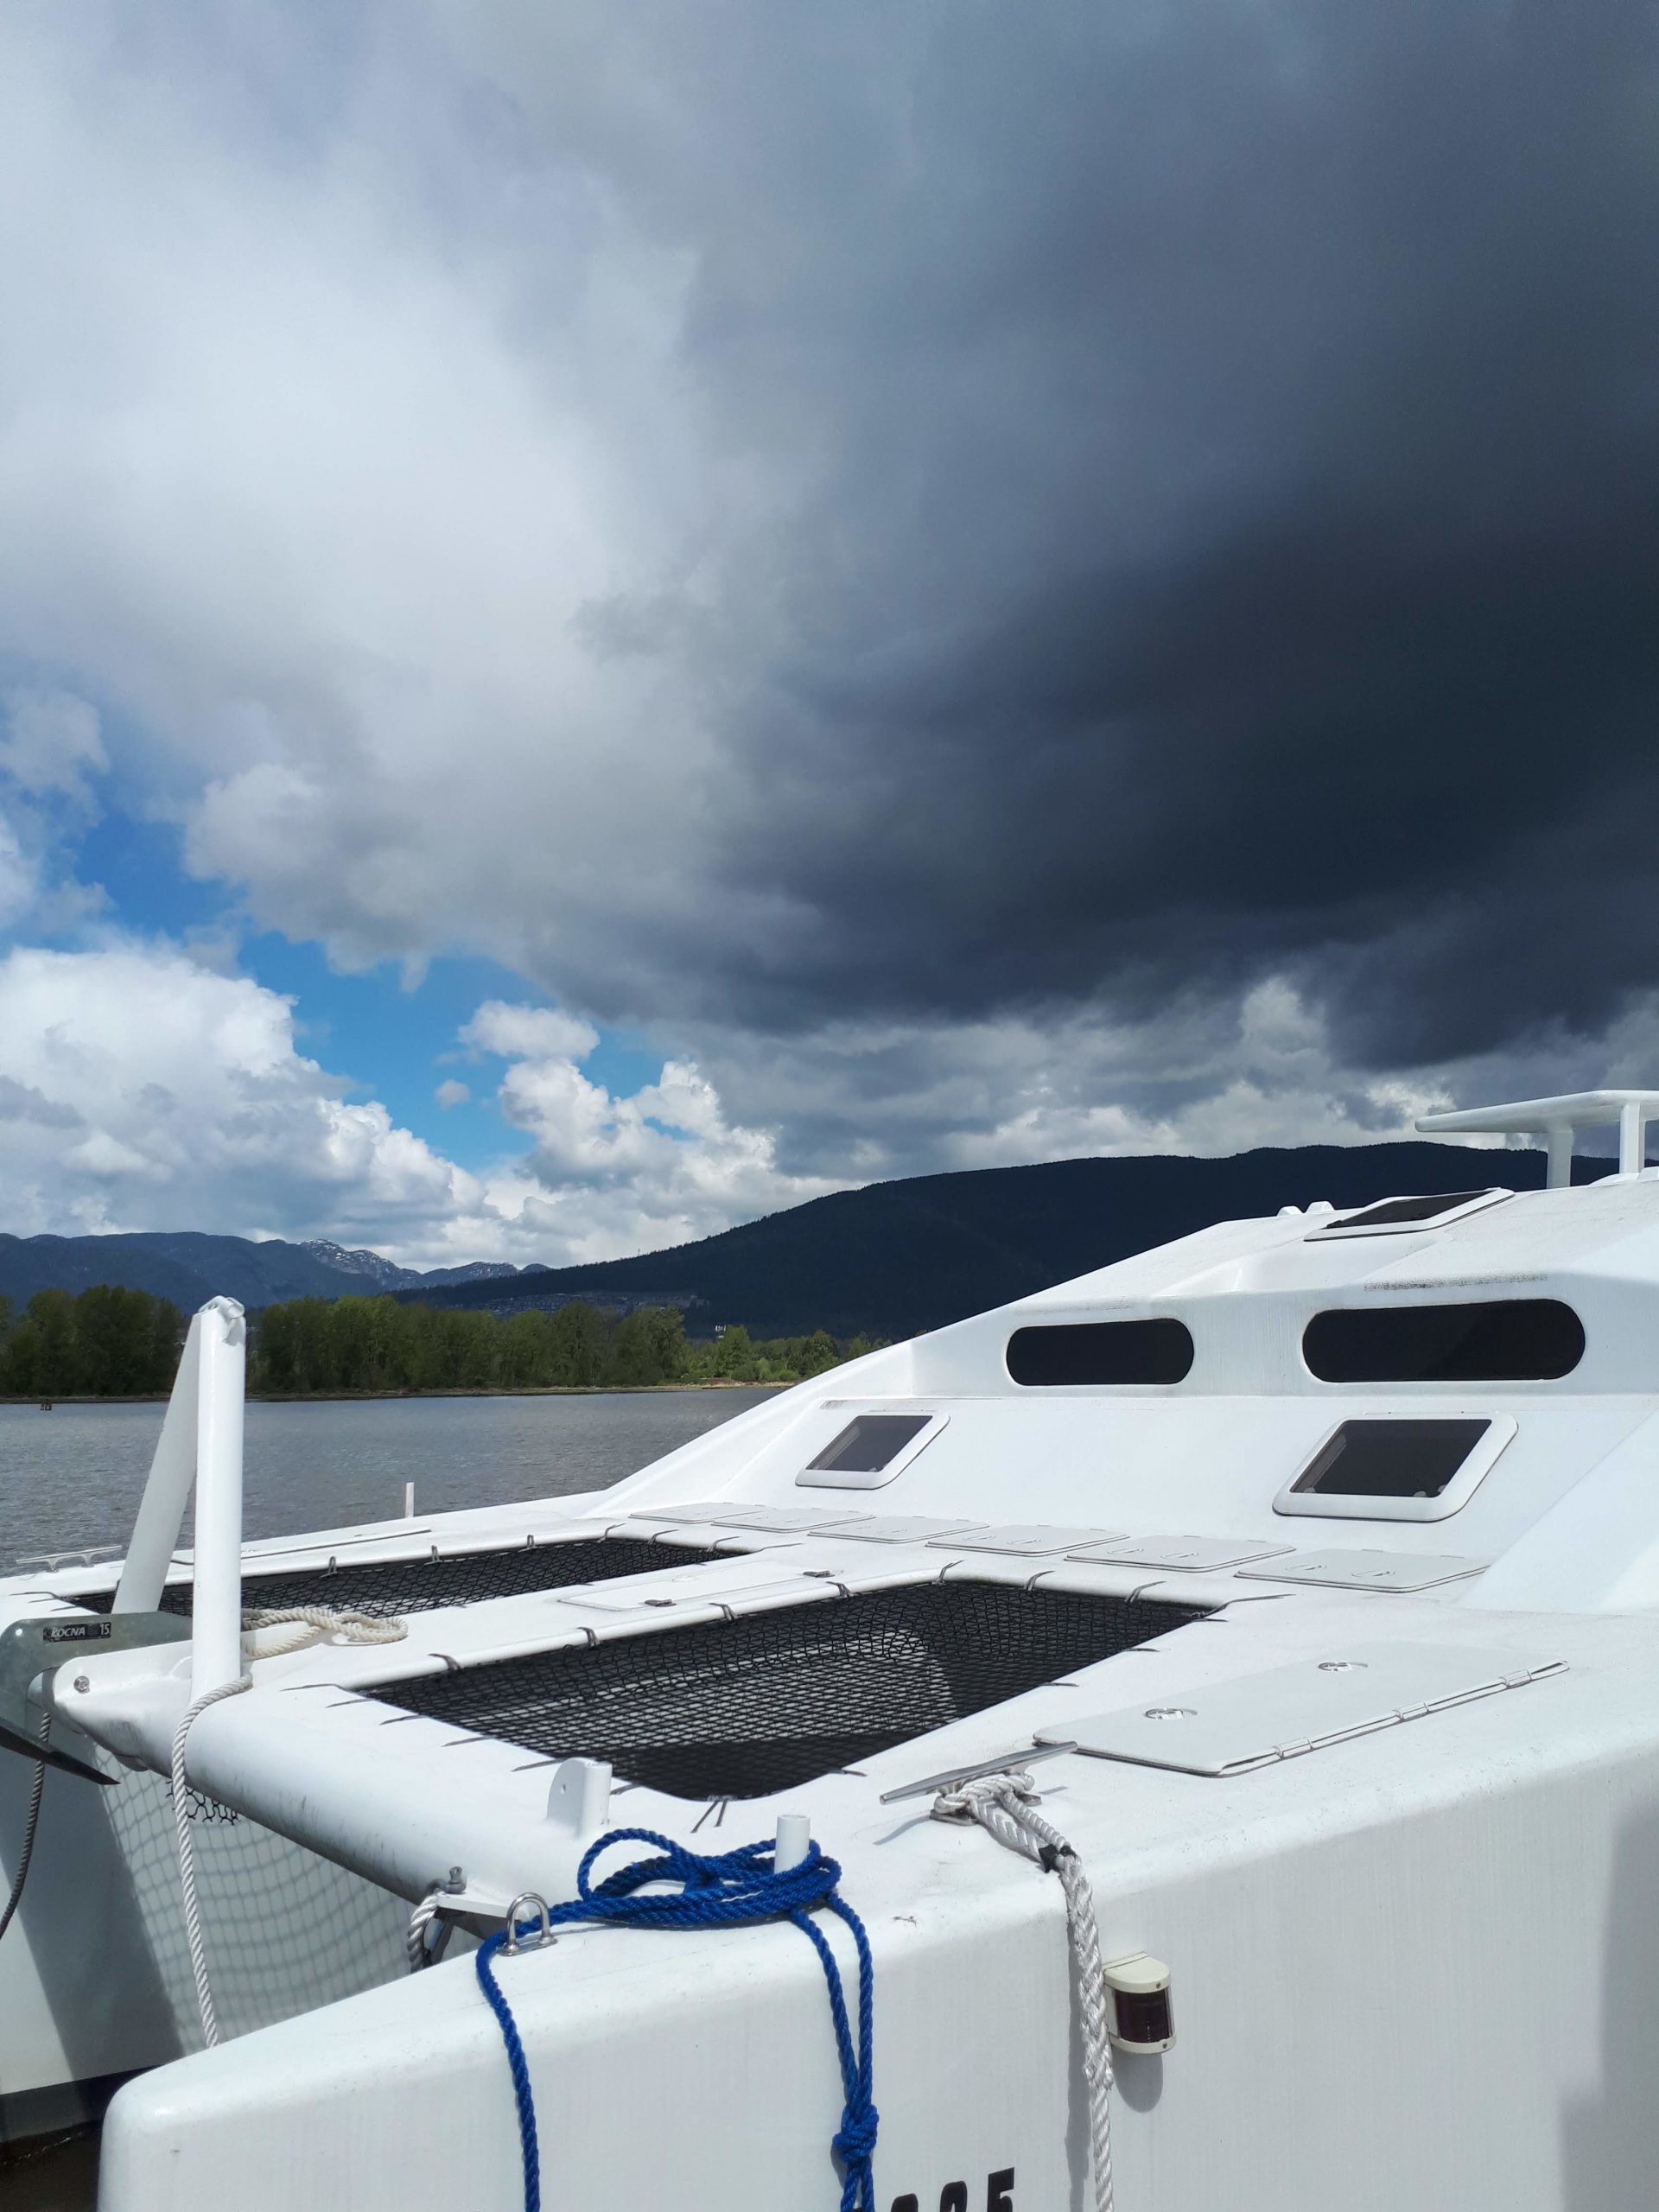 One of the many boats at dock at the Pitt Meadows Marina